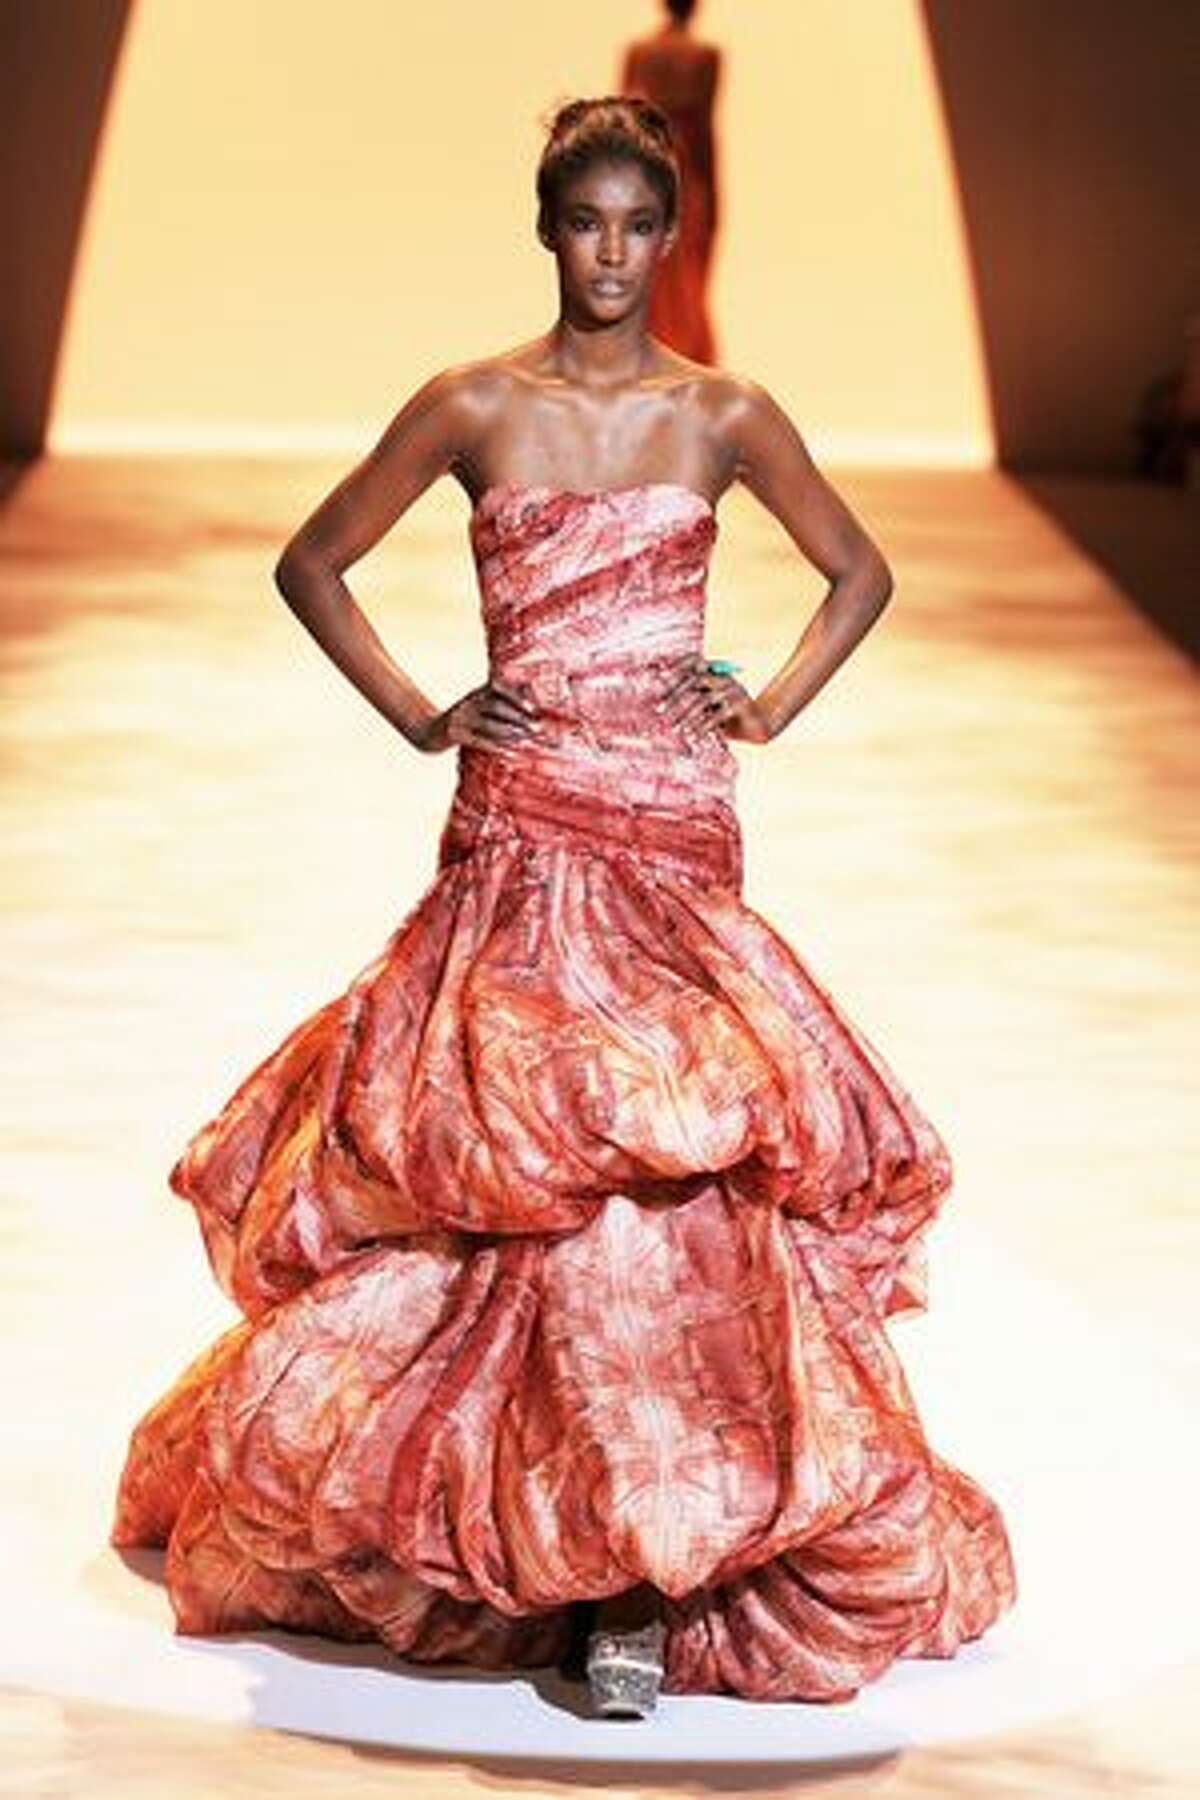 A model walks the runway at the Christian Siriano Spring 2011 fashion show during Mercedes-Benz Fashion Week at The Stage at Lincoln Center in New York City.